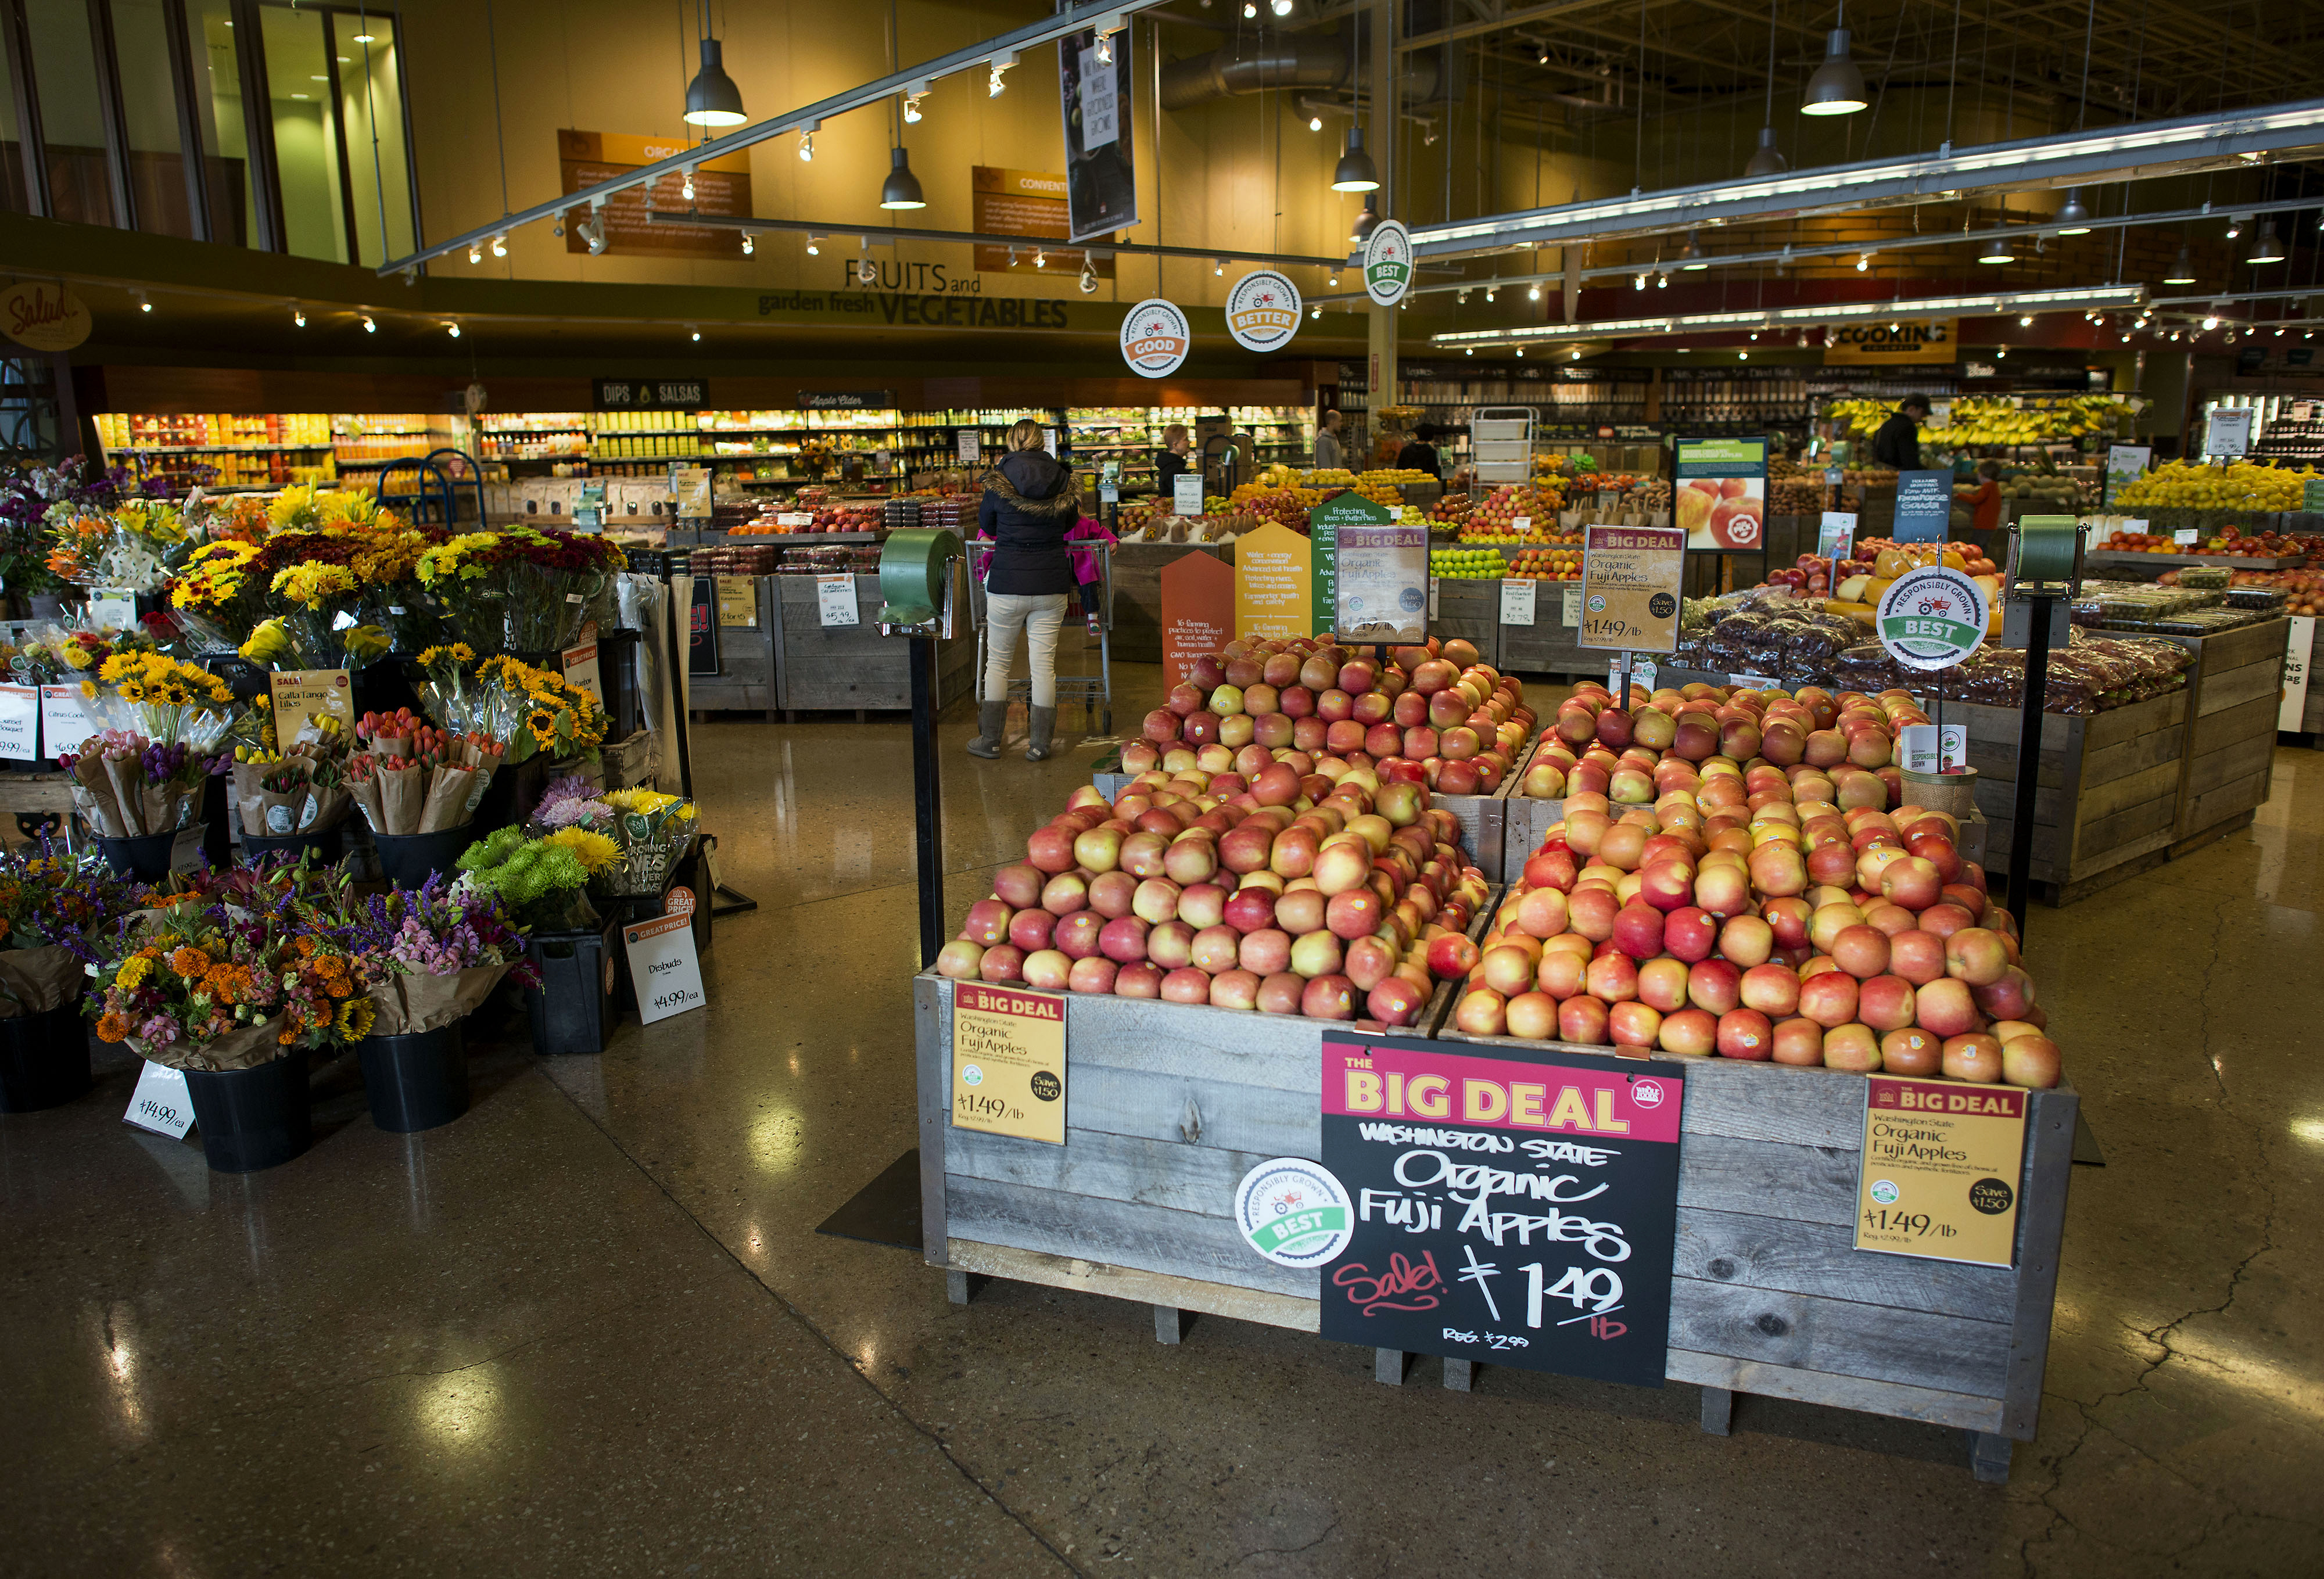 Customers shop in the produce section of a Whole Foods Market Inc. store in Dublin, Ohio, U.S., on Friday, Nov. 7, 2014.